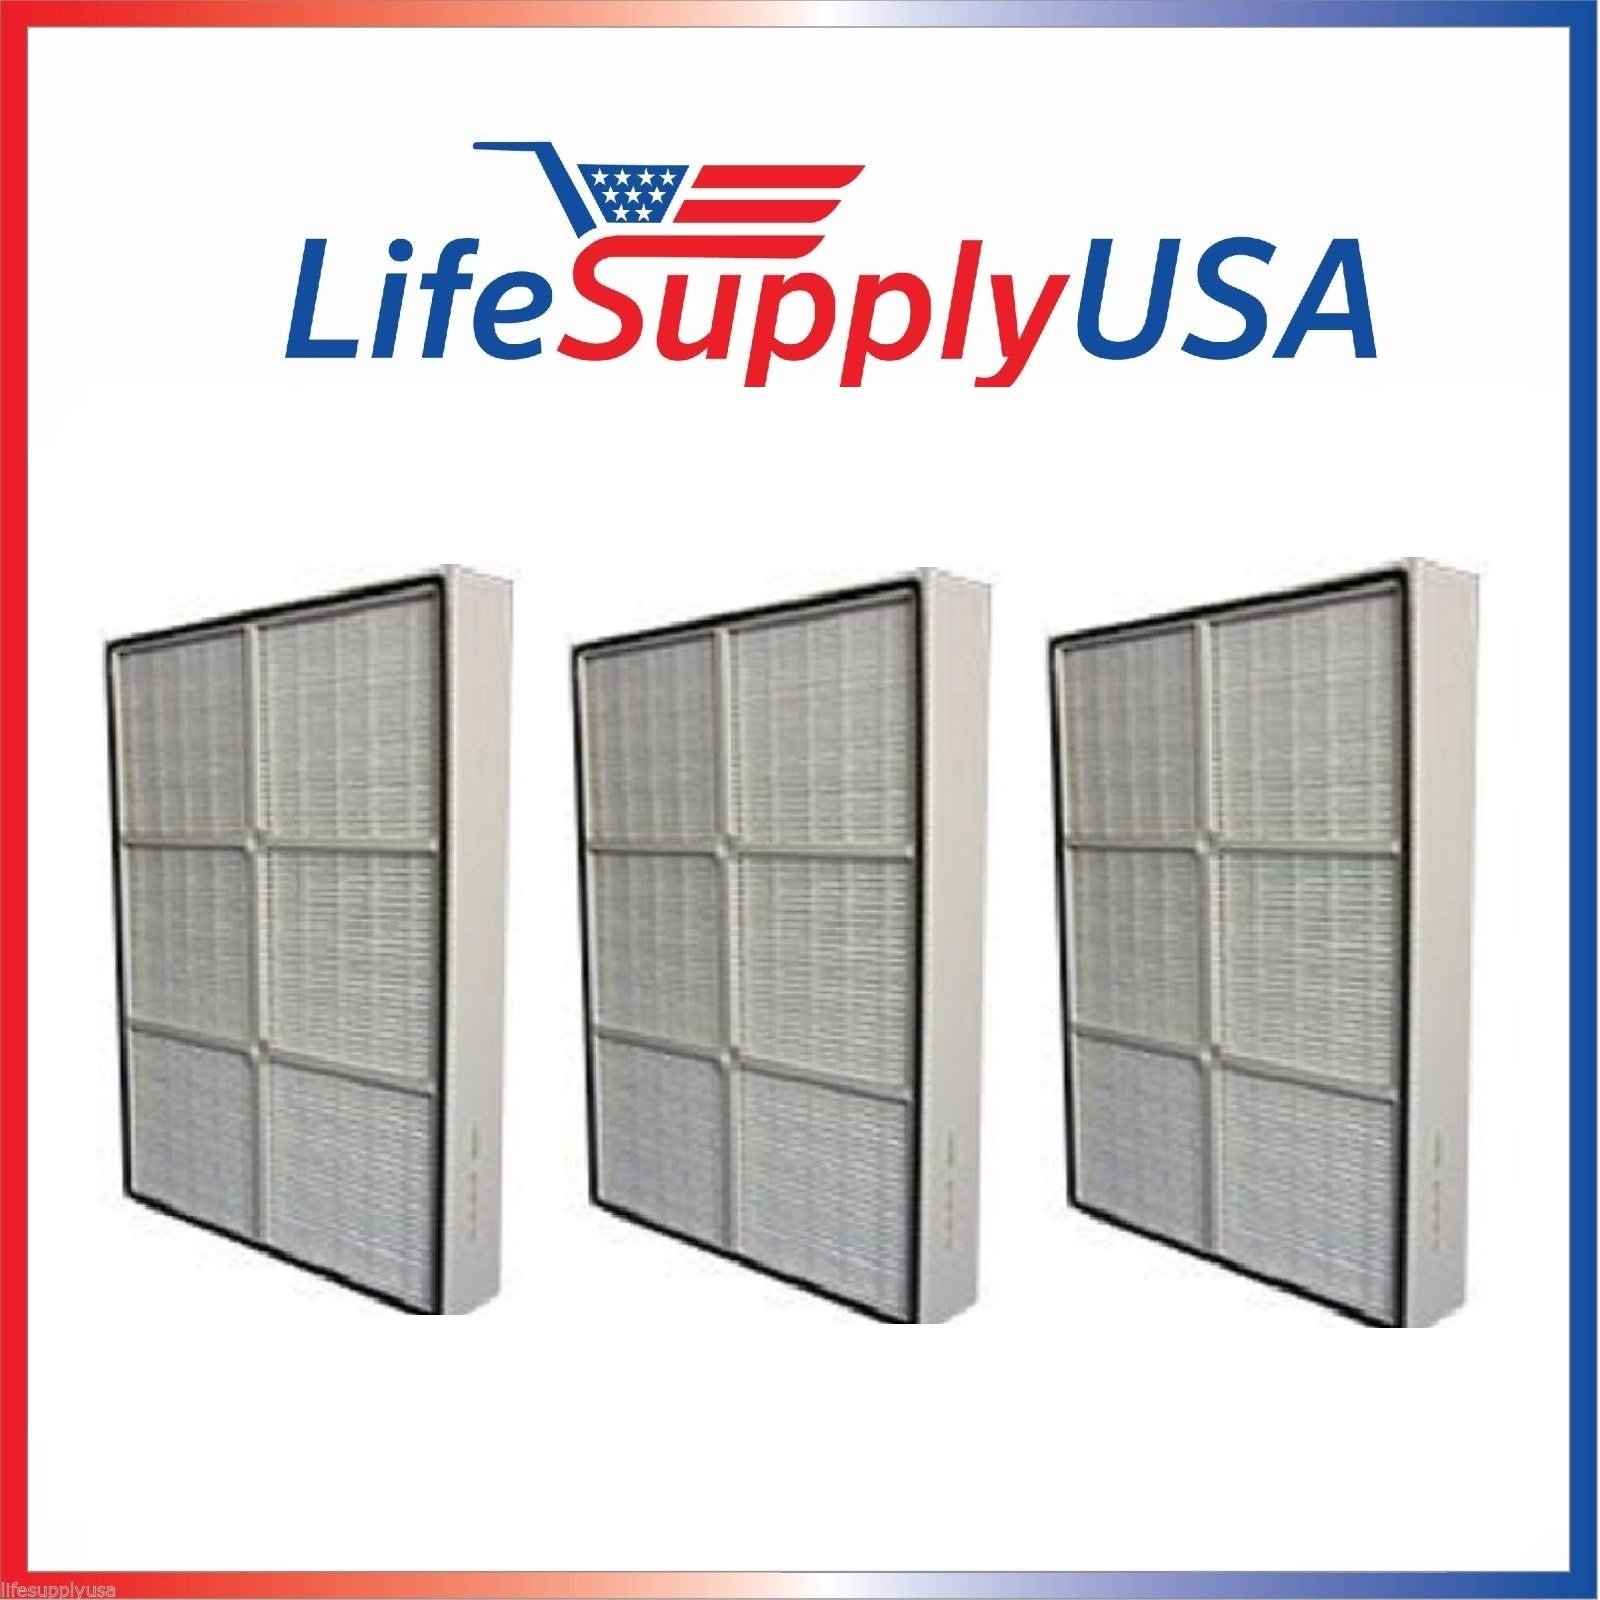 3 Pack - Filters fit Whirlpool 1183051K PLASTIC FRAME for AP150 and AP250 By LifeSupplyUSA